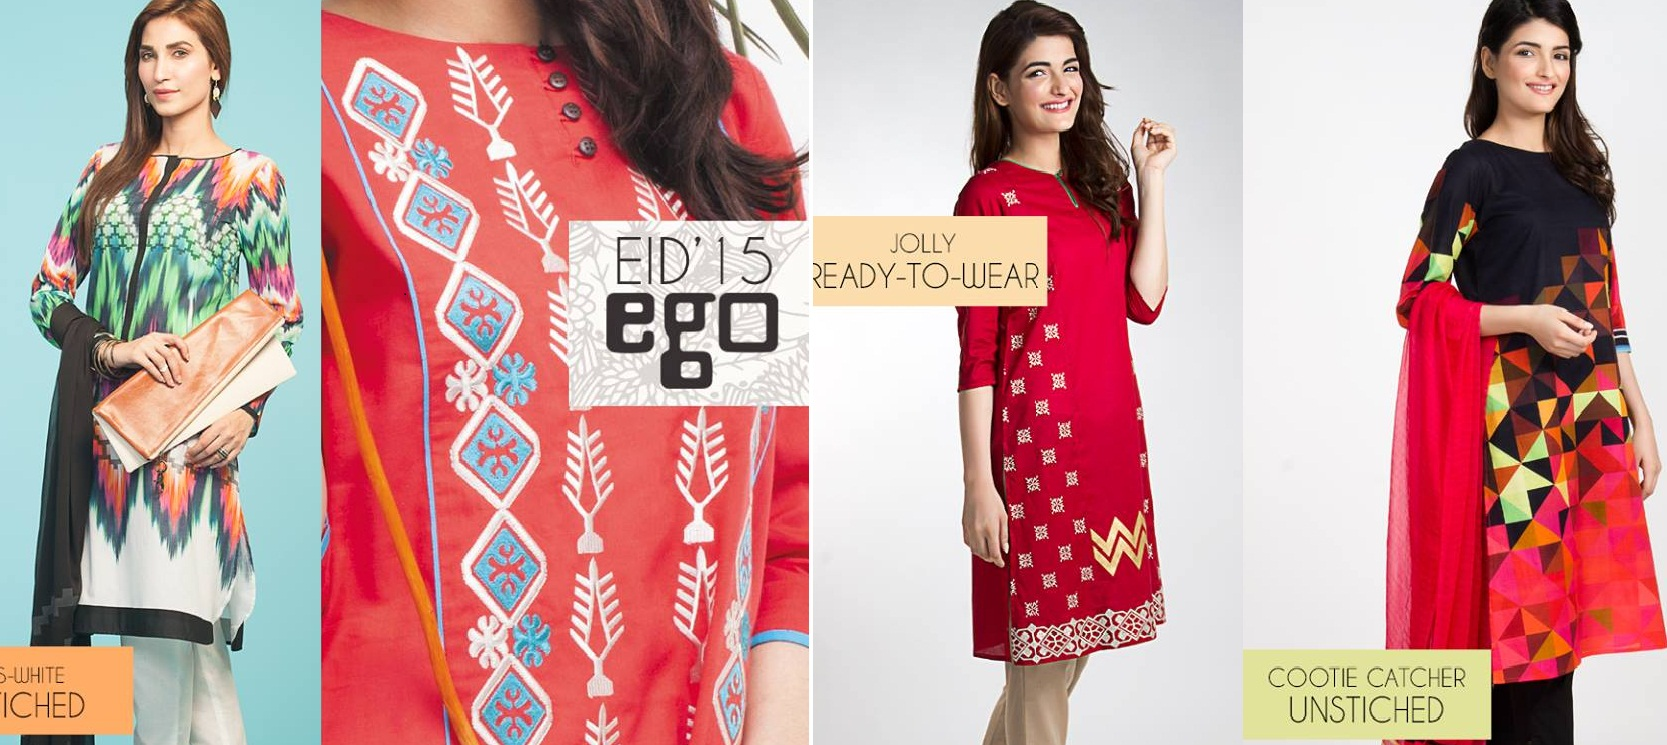 EGO Latest Cool Designer Shirts Eid Formal Collection 2015-2016